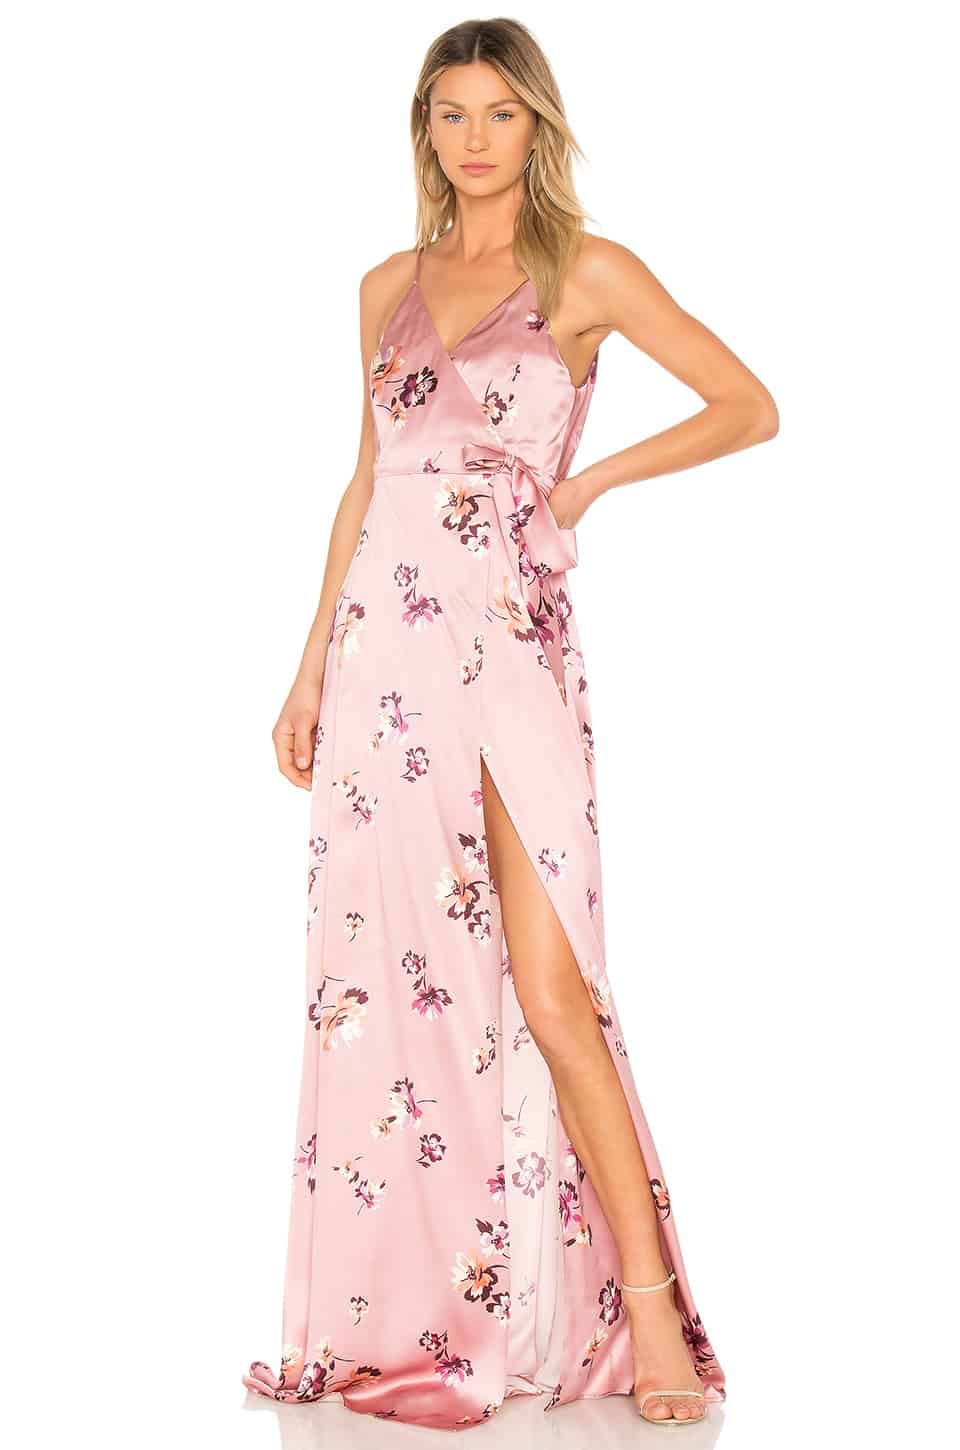 Pink gown for wedding attire